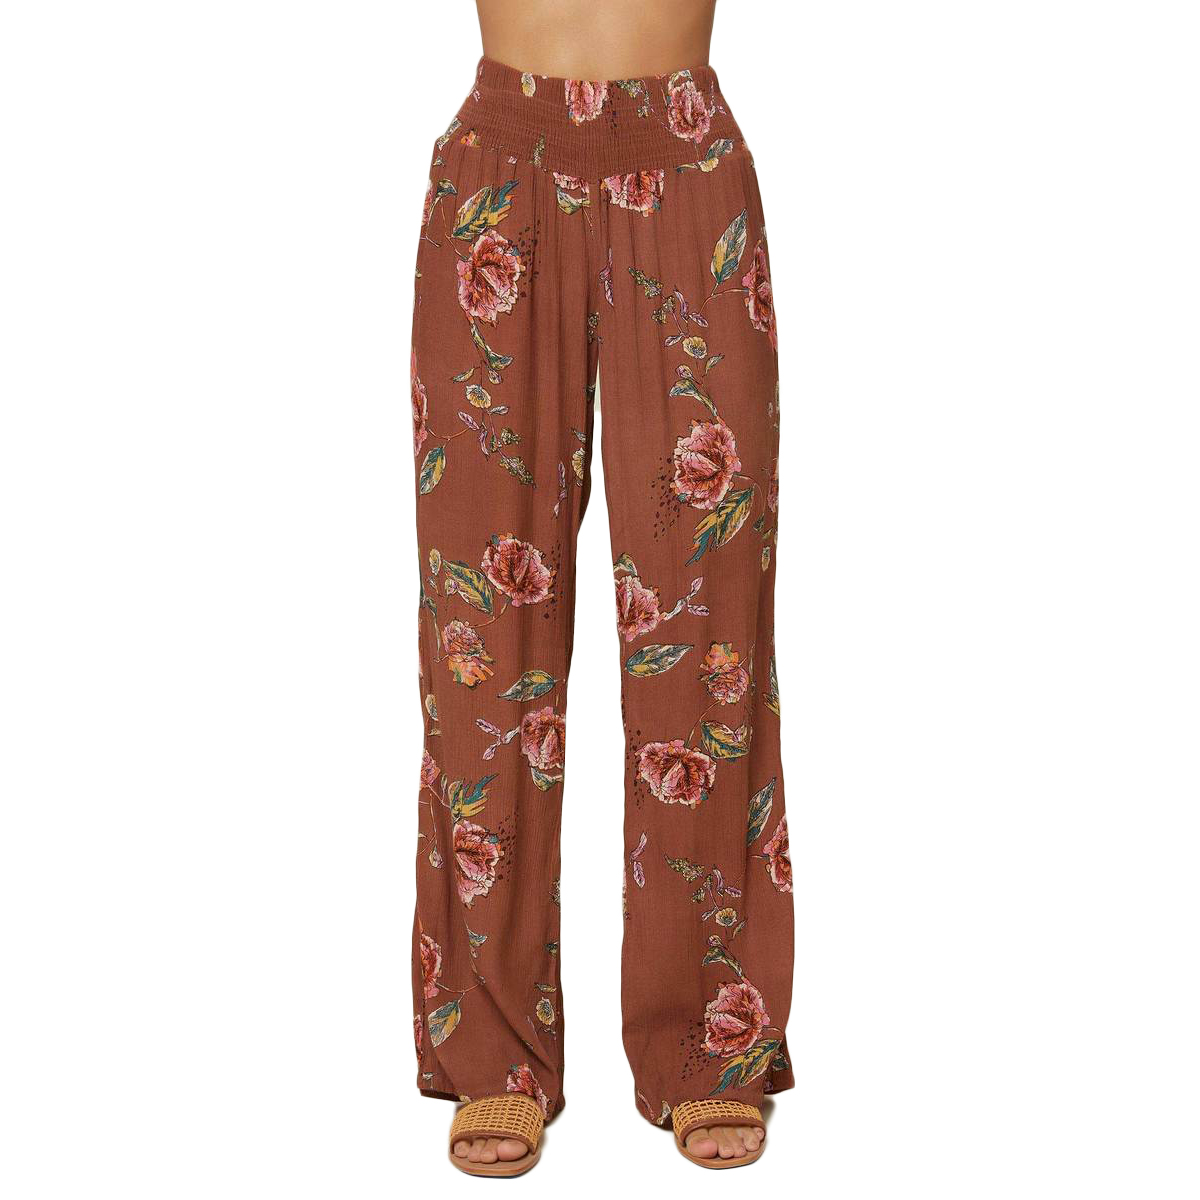 O'neill Women's Johnny Floral Pants - Brown, M